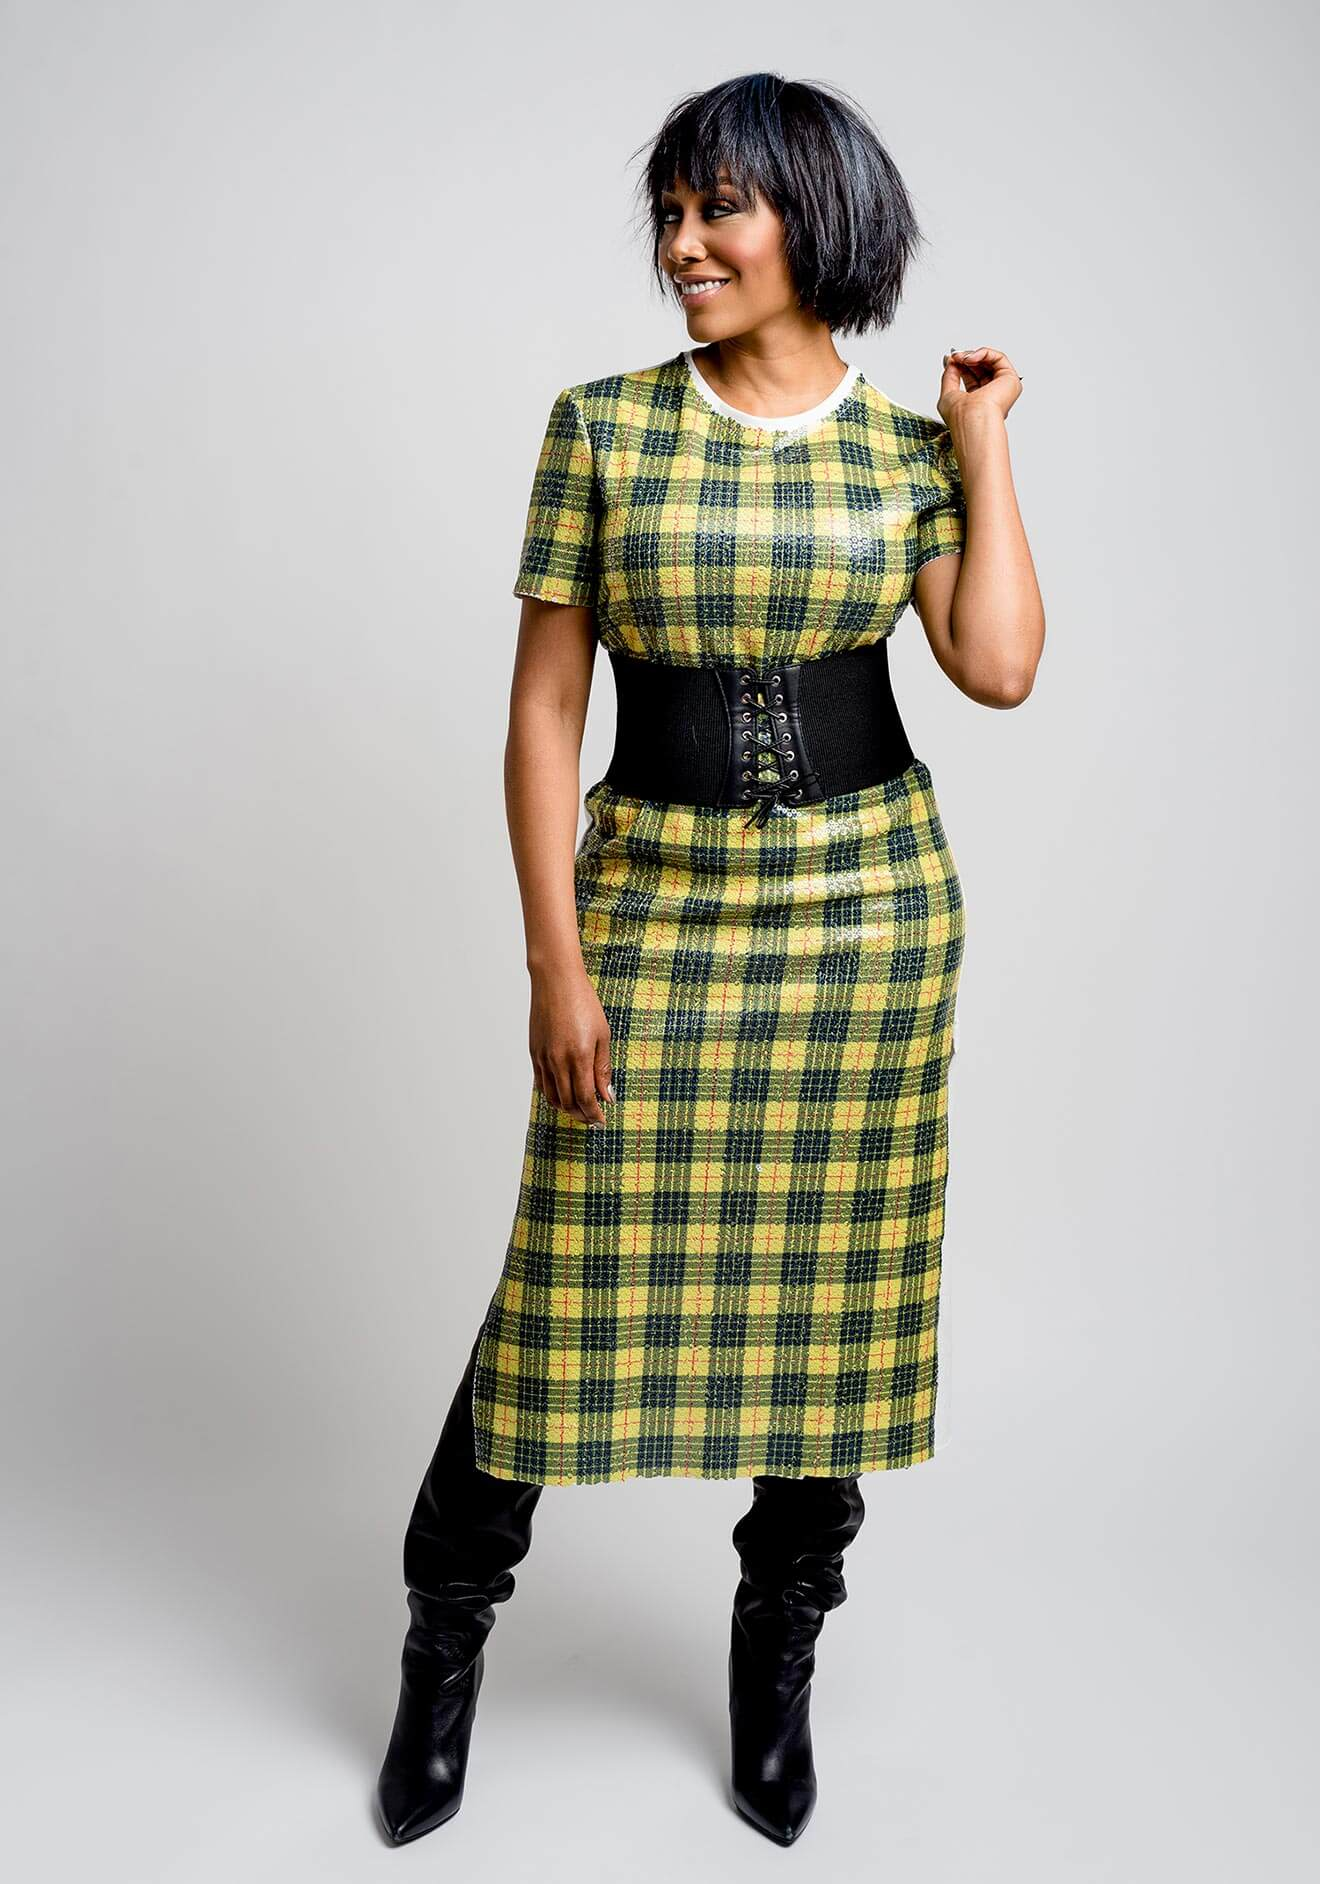 Chillin' with Simone Missick, yellow plaid dress